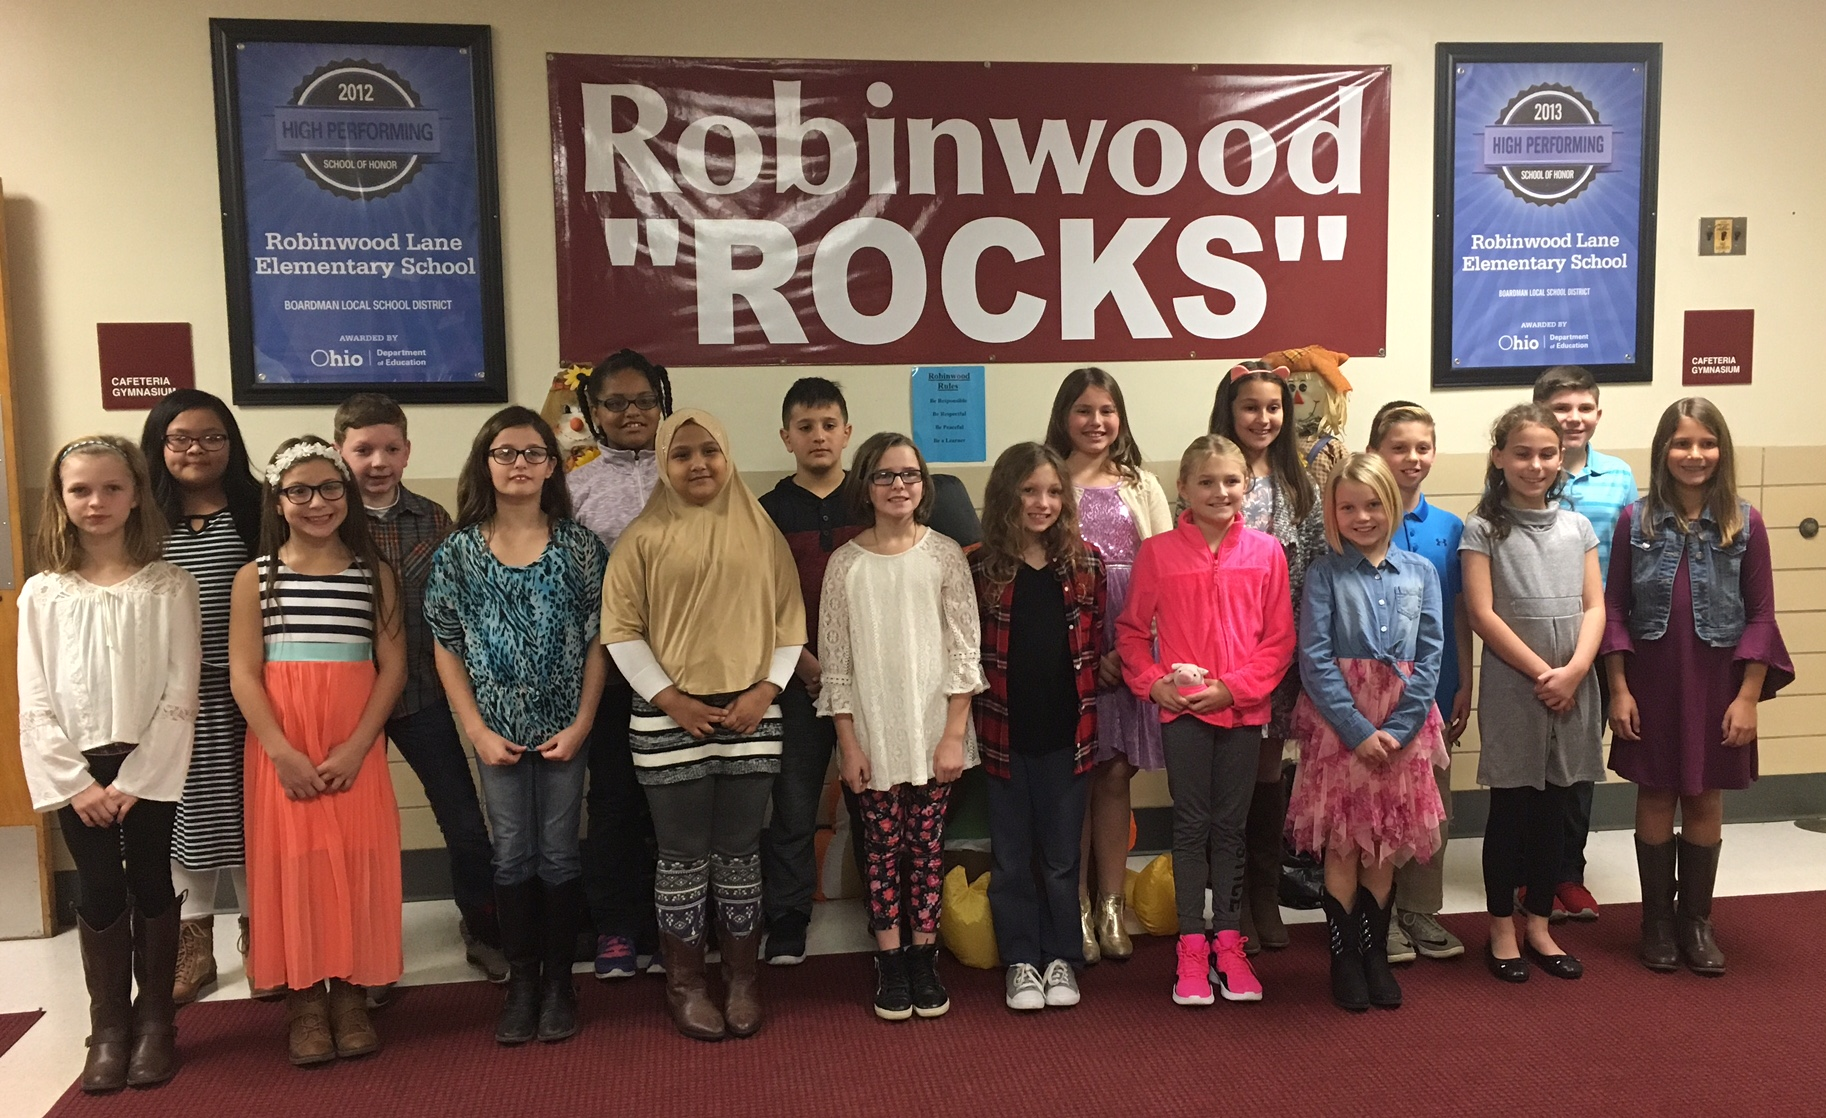 Writers Workshop students stand in front of school banner